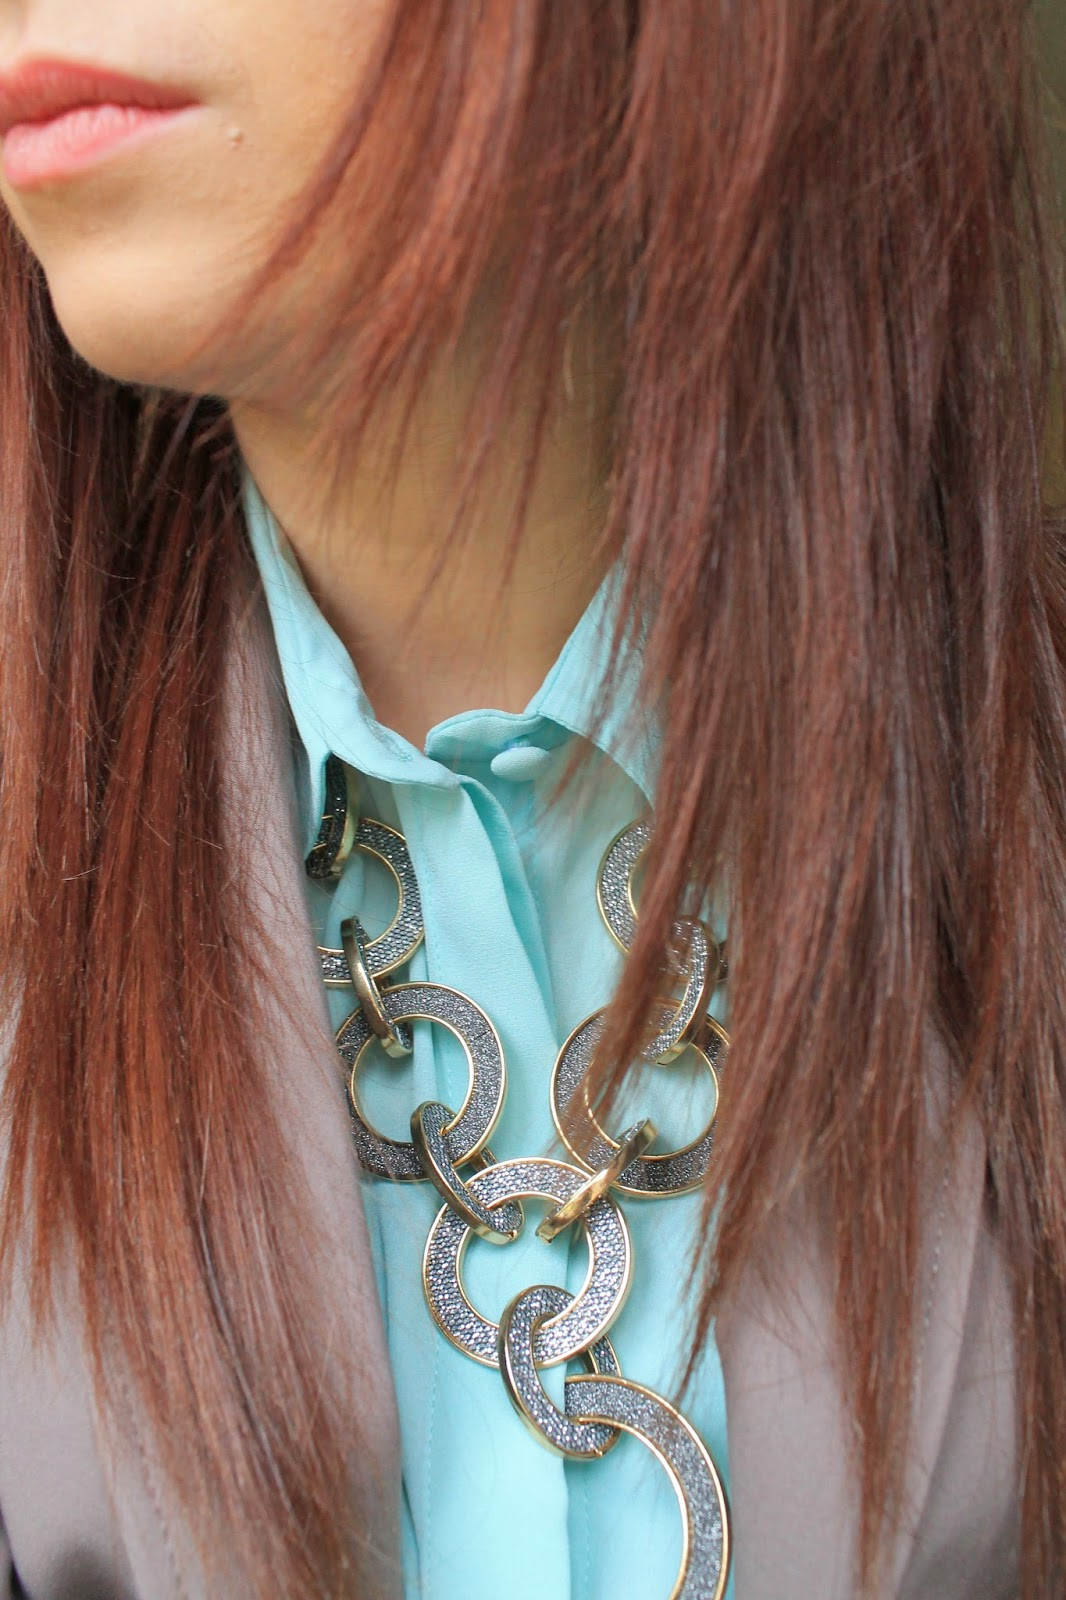 Primark Shirt & H&M Blazer Wallis Necklace